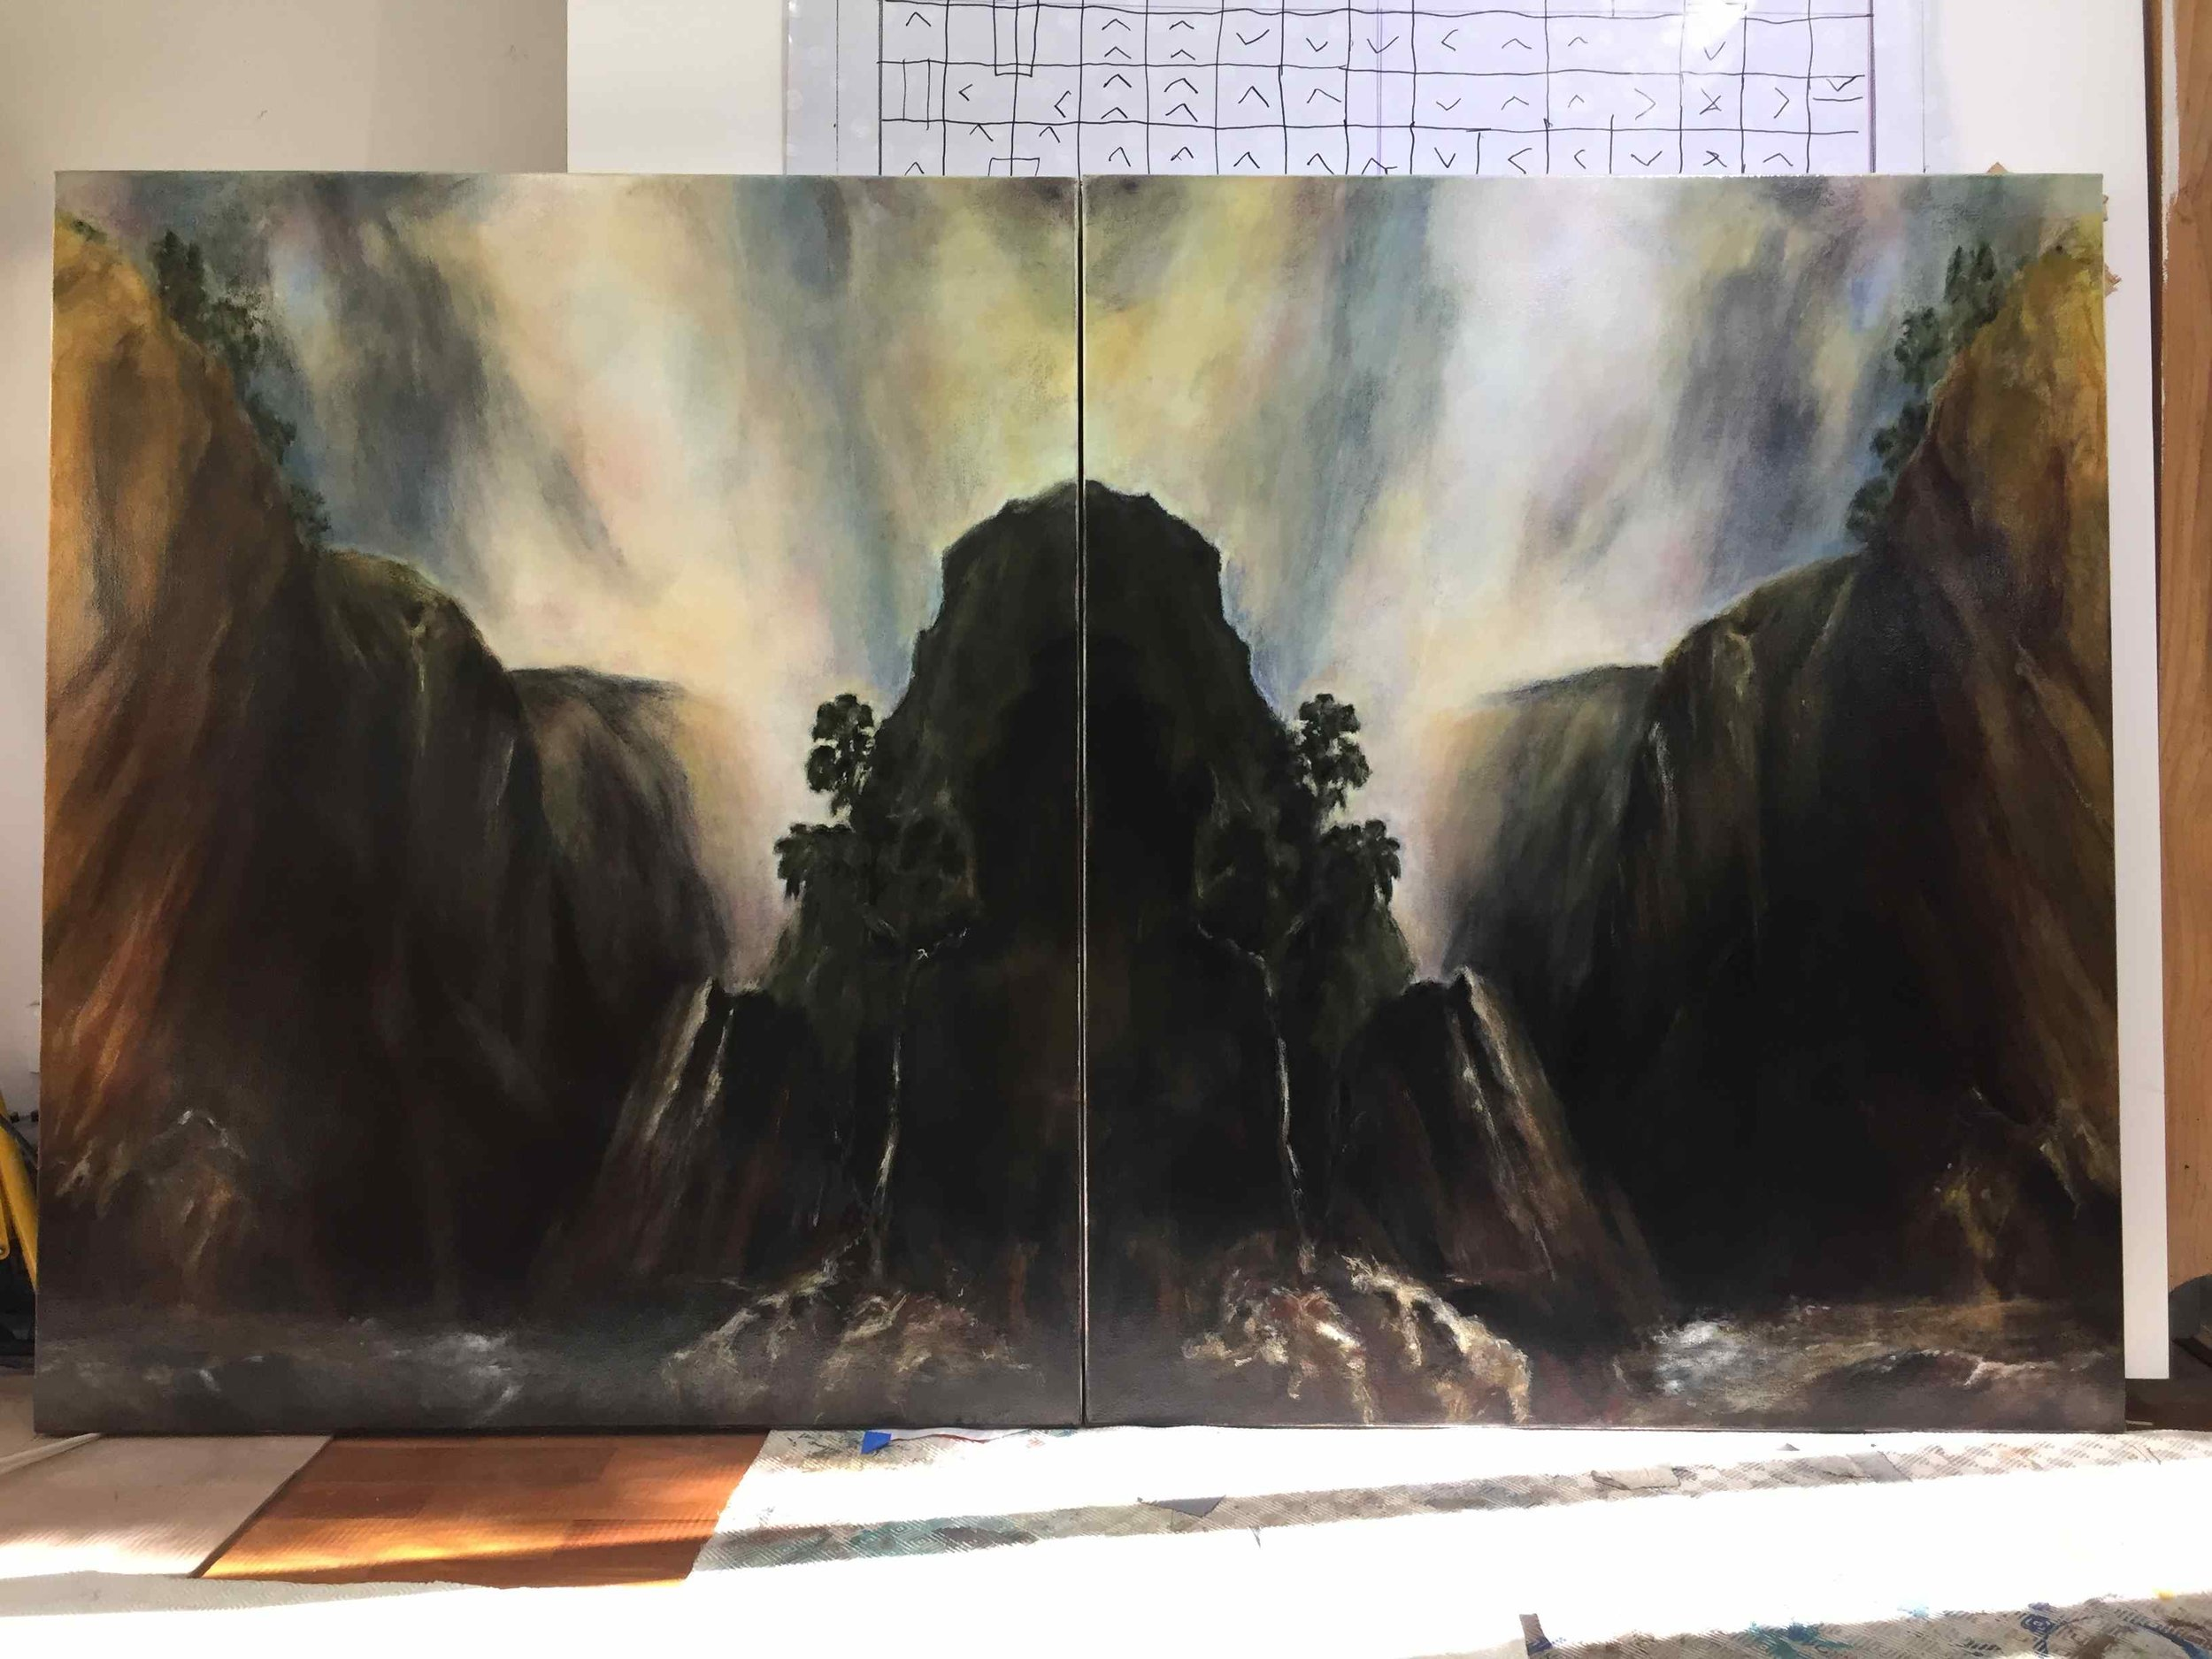 """The full title of this piece has """"after Conrad Martens'  Denn's Falls, Tia River""""  added to it because thats the souce image & I've taken considerable liberties with it"""